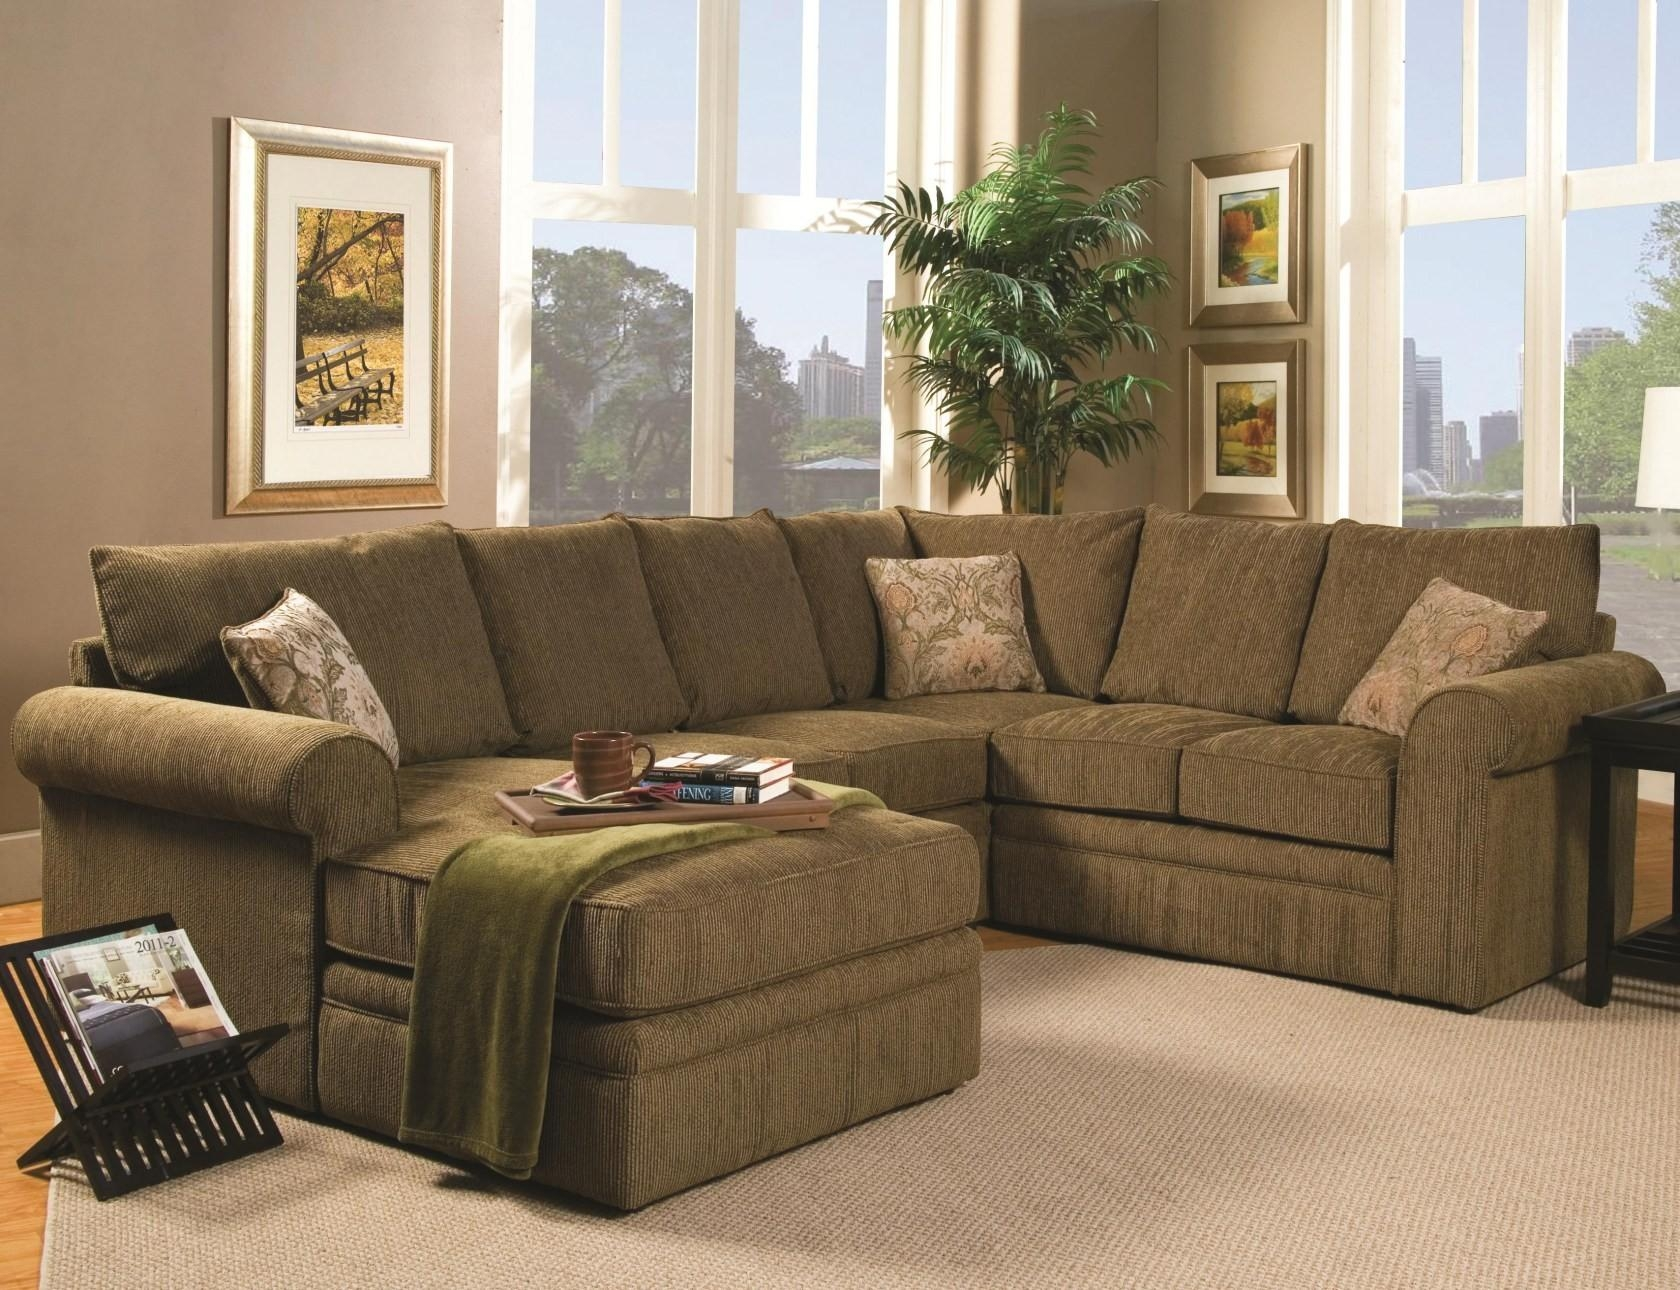 Furniture: Luxury U Shaped Sectional Sofa For Living Room Inside Green Leather Sectional Sofas (Image 5 of 20)